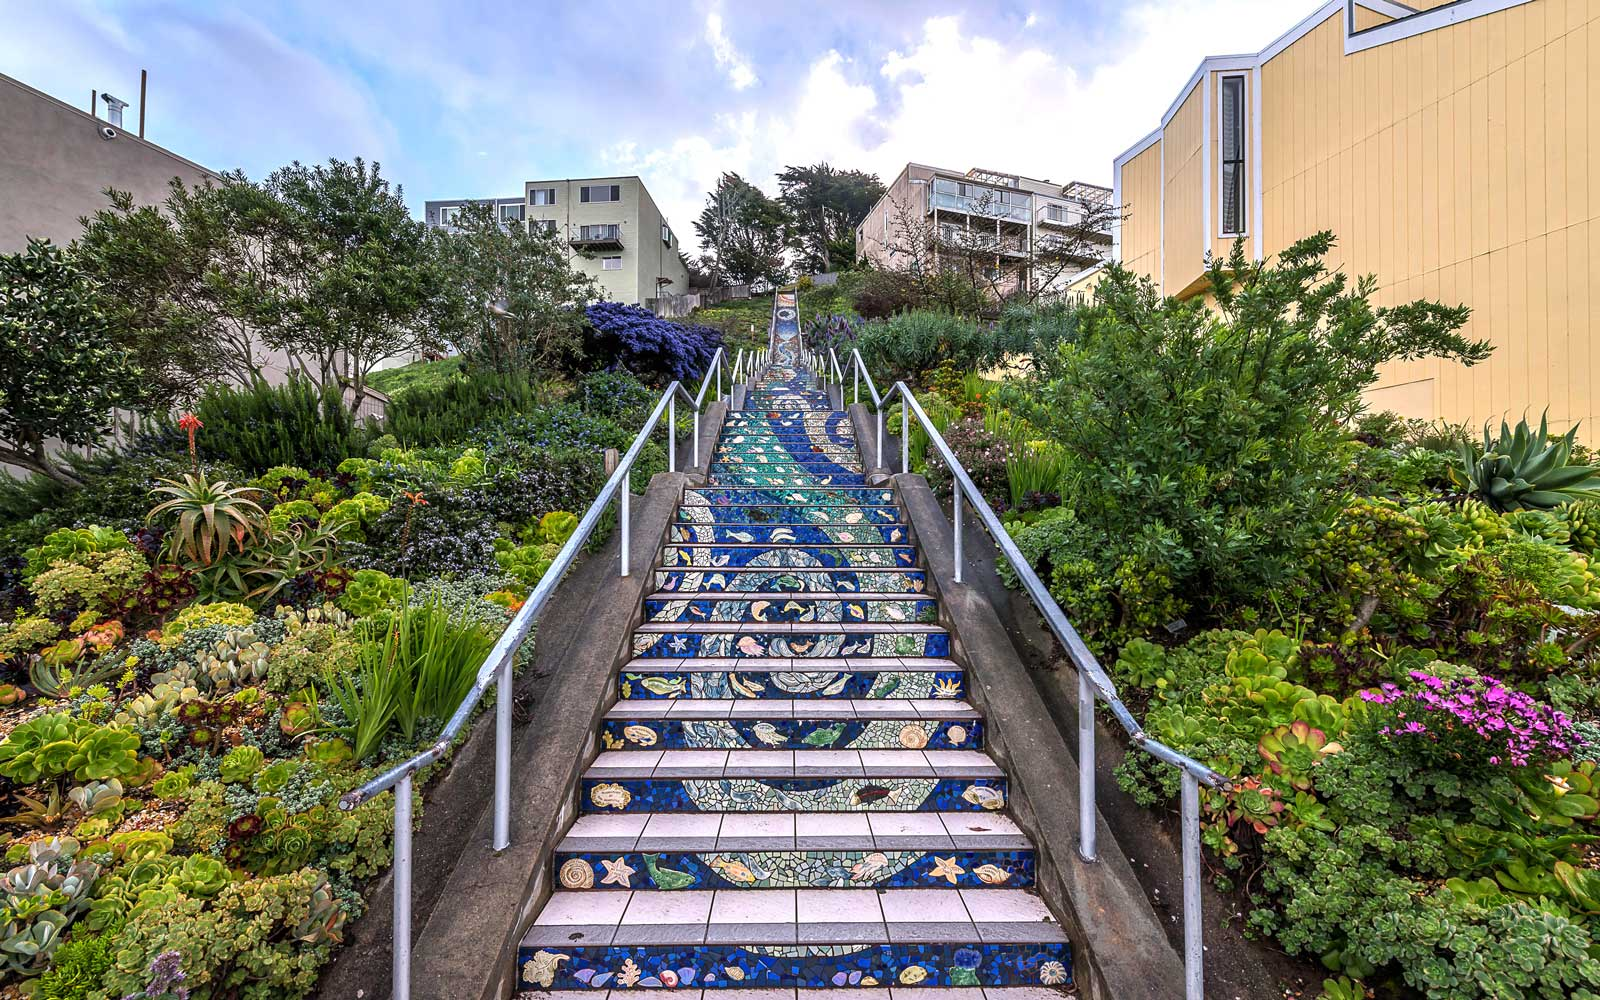 The Mosaic Stairs of San Francisco